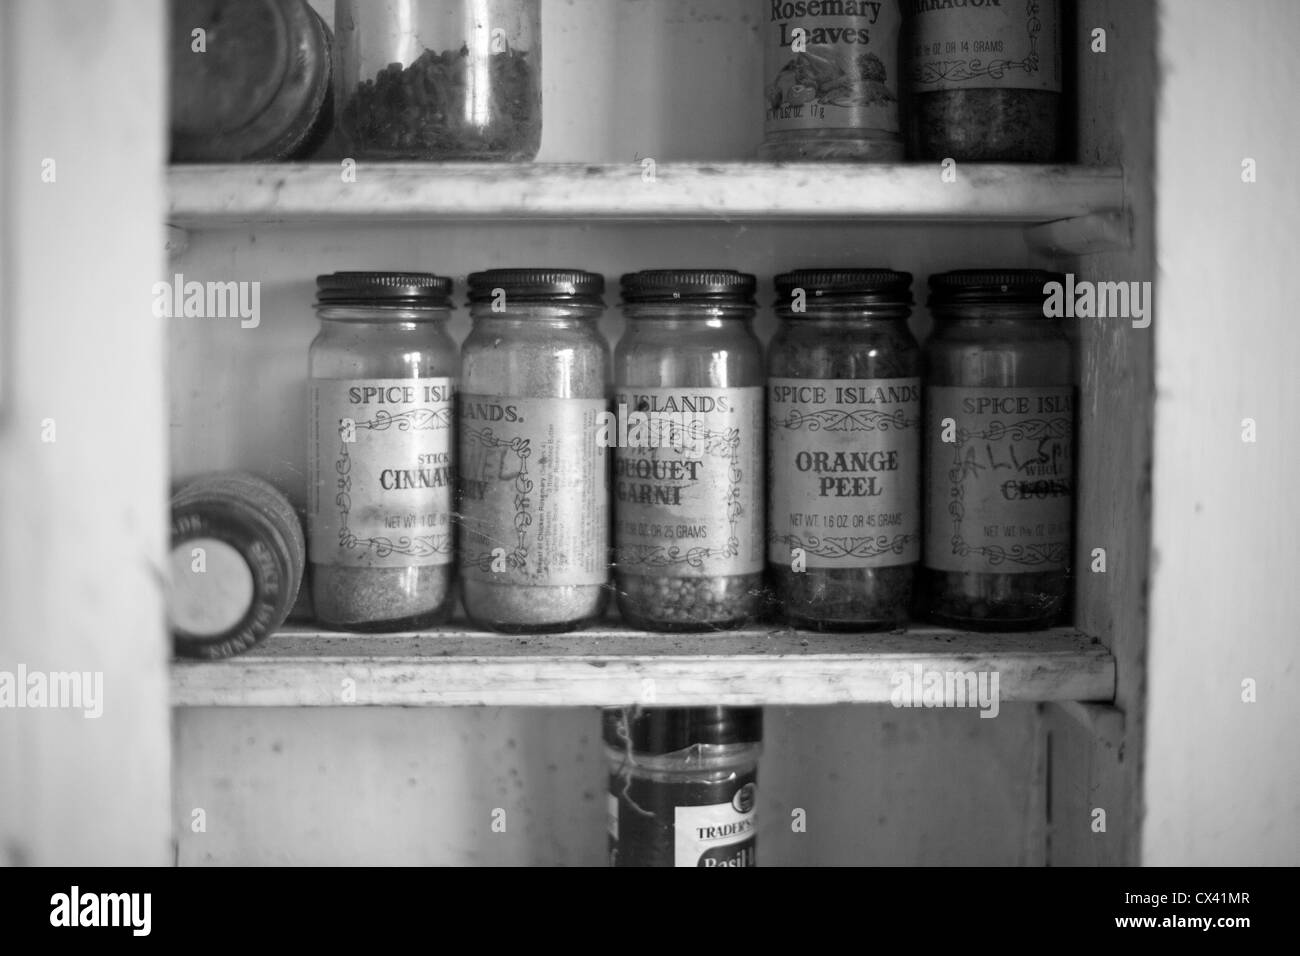 A house which has sat vacant for 20 years still has old spice jars in a cabinet. - Stock Image